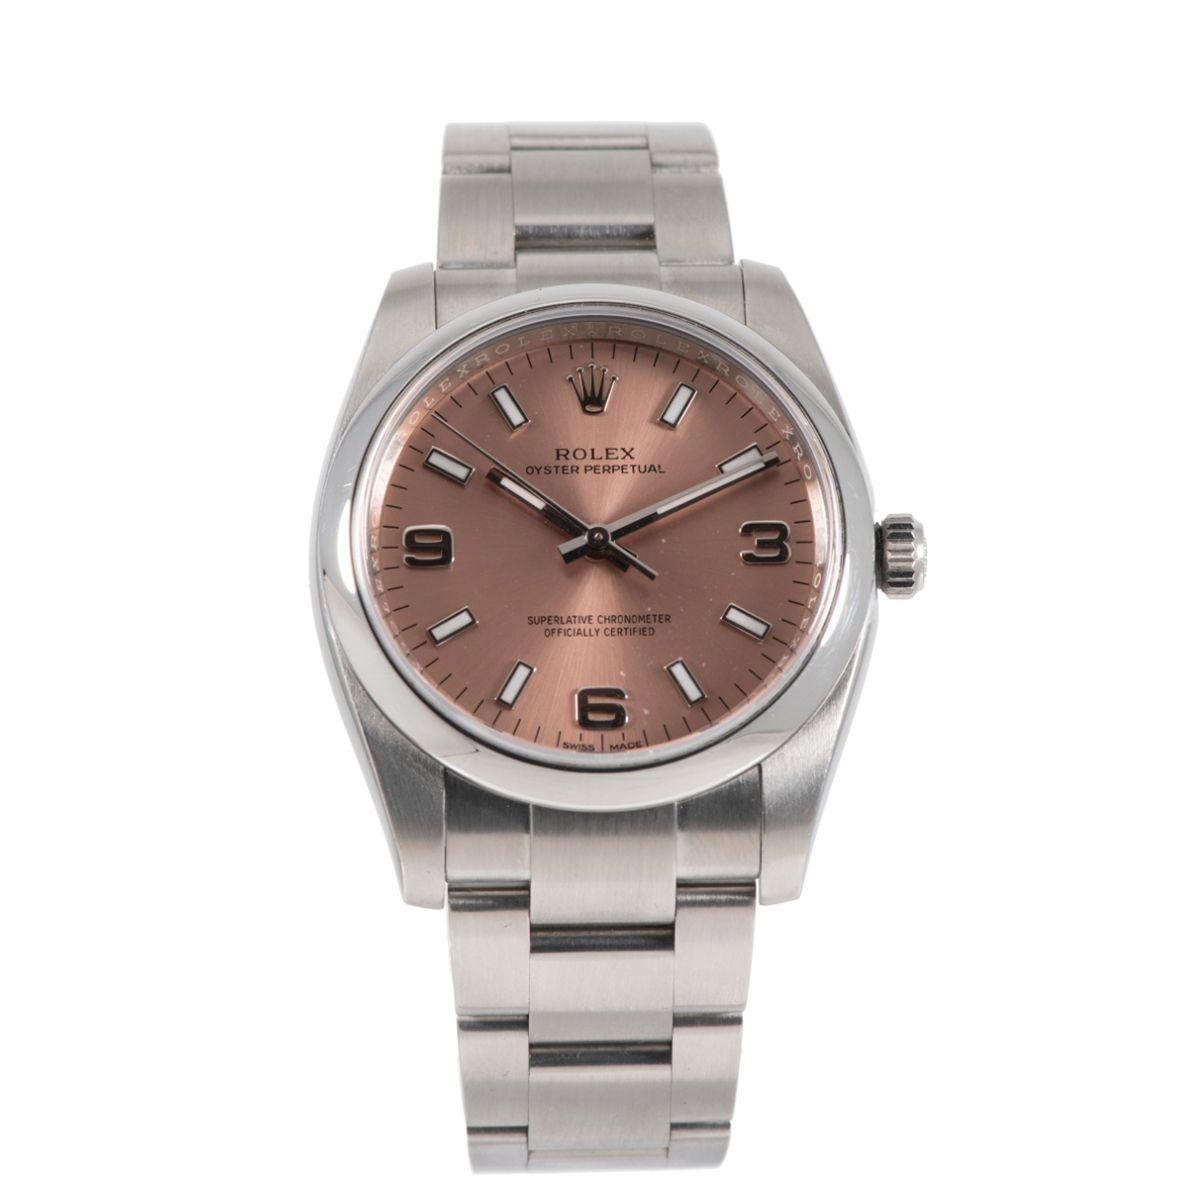 Rolex Oyster Perpetual 114200 Steel & Salmon 34mm Unisex Watch